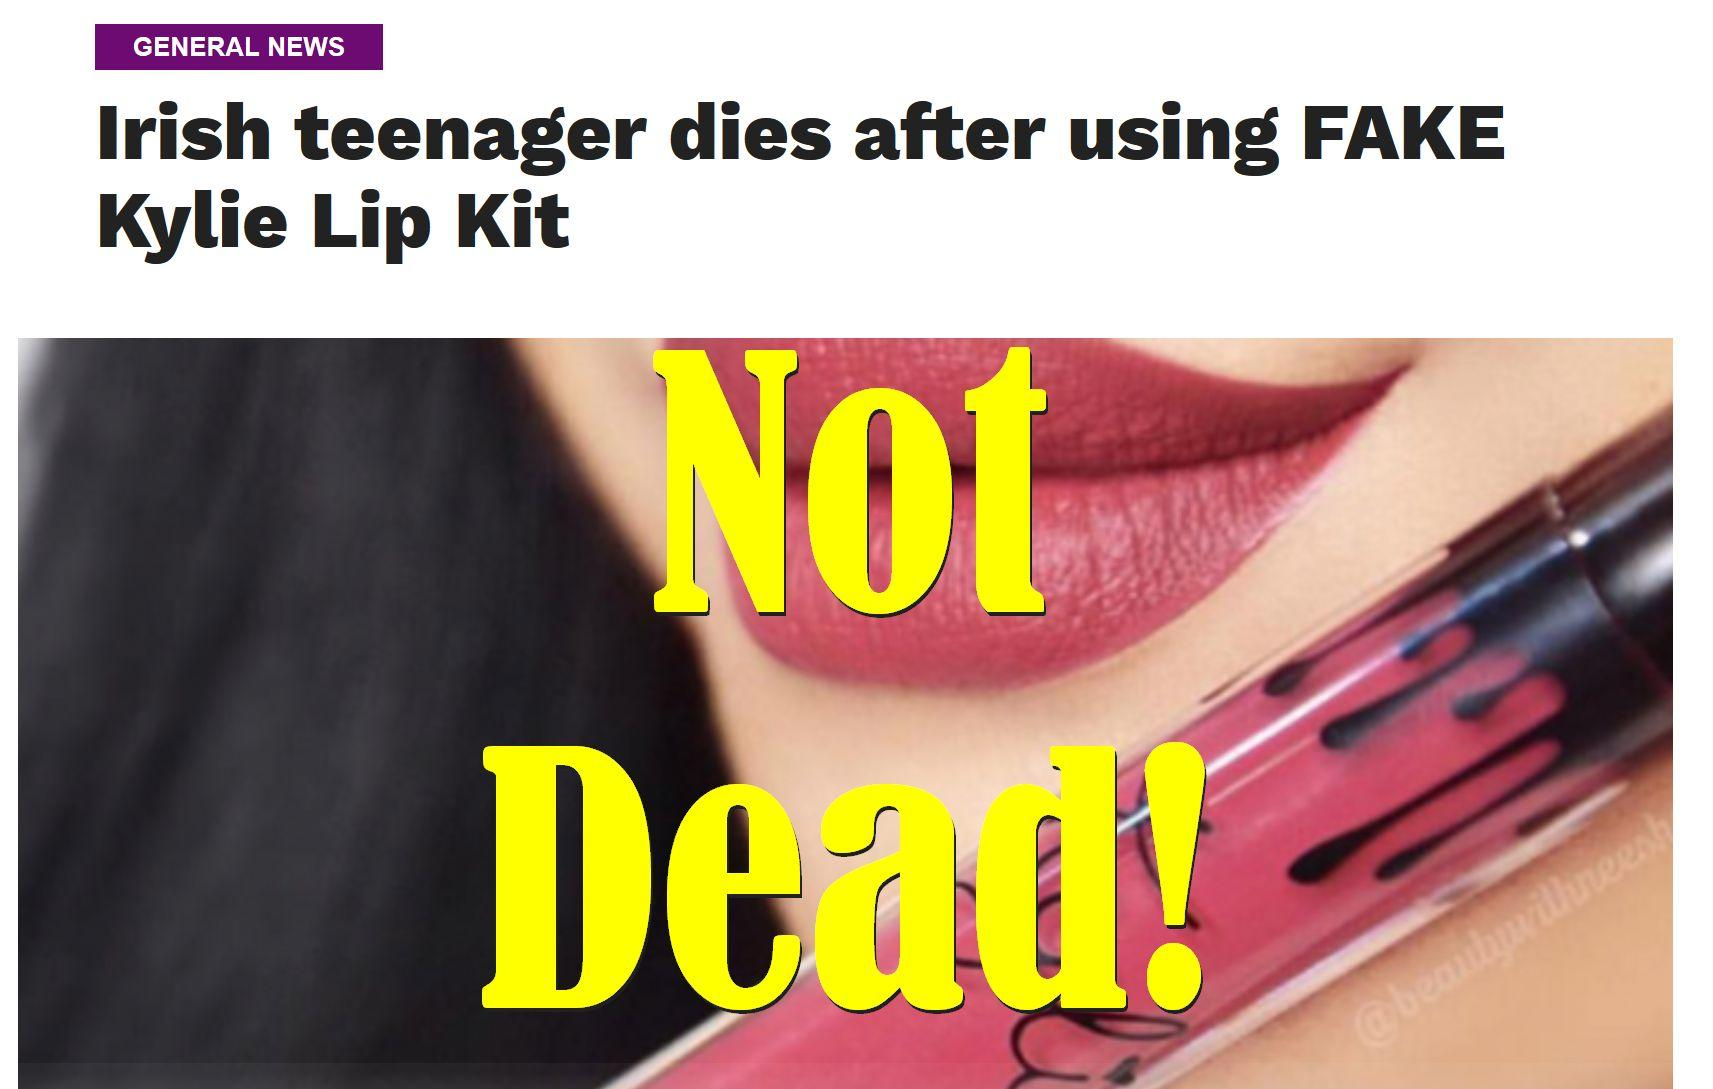 Fake News: Irish Teenager Did NOT Die After Using Fake Kylie Lip Kit